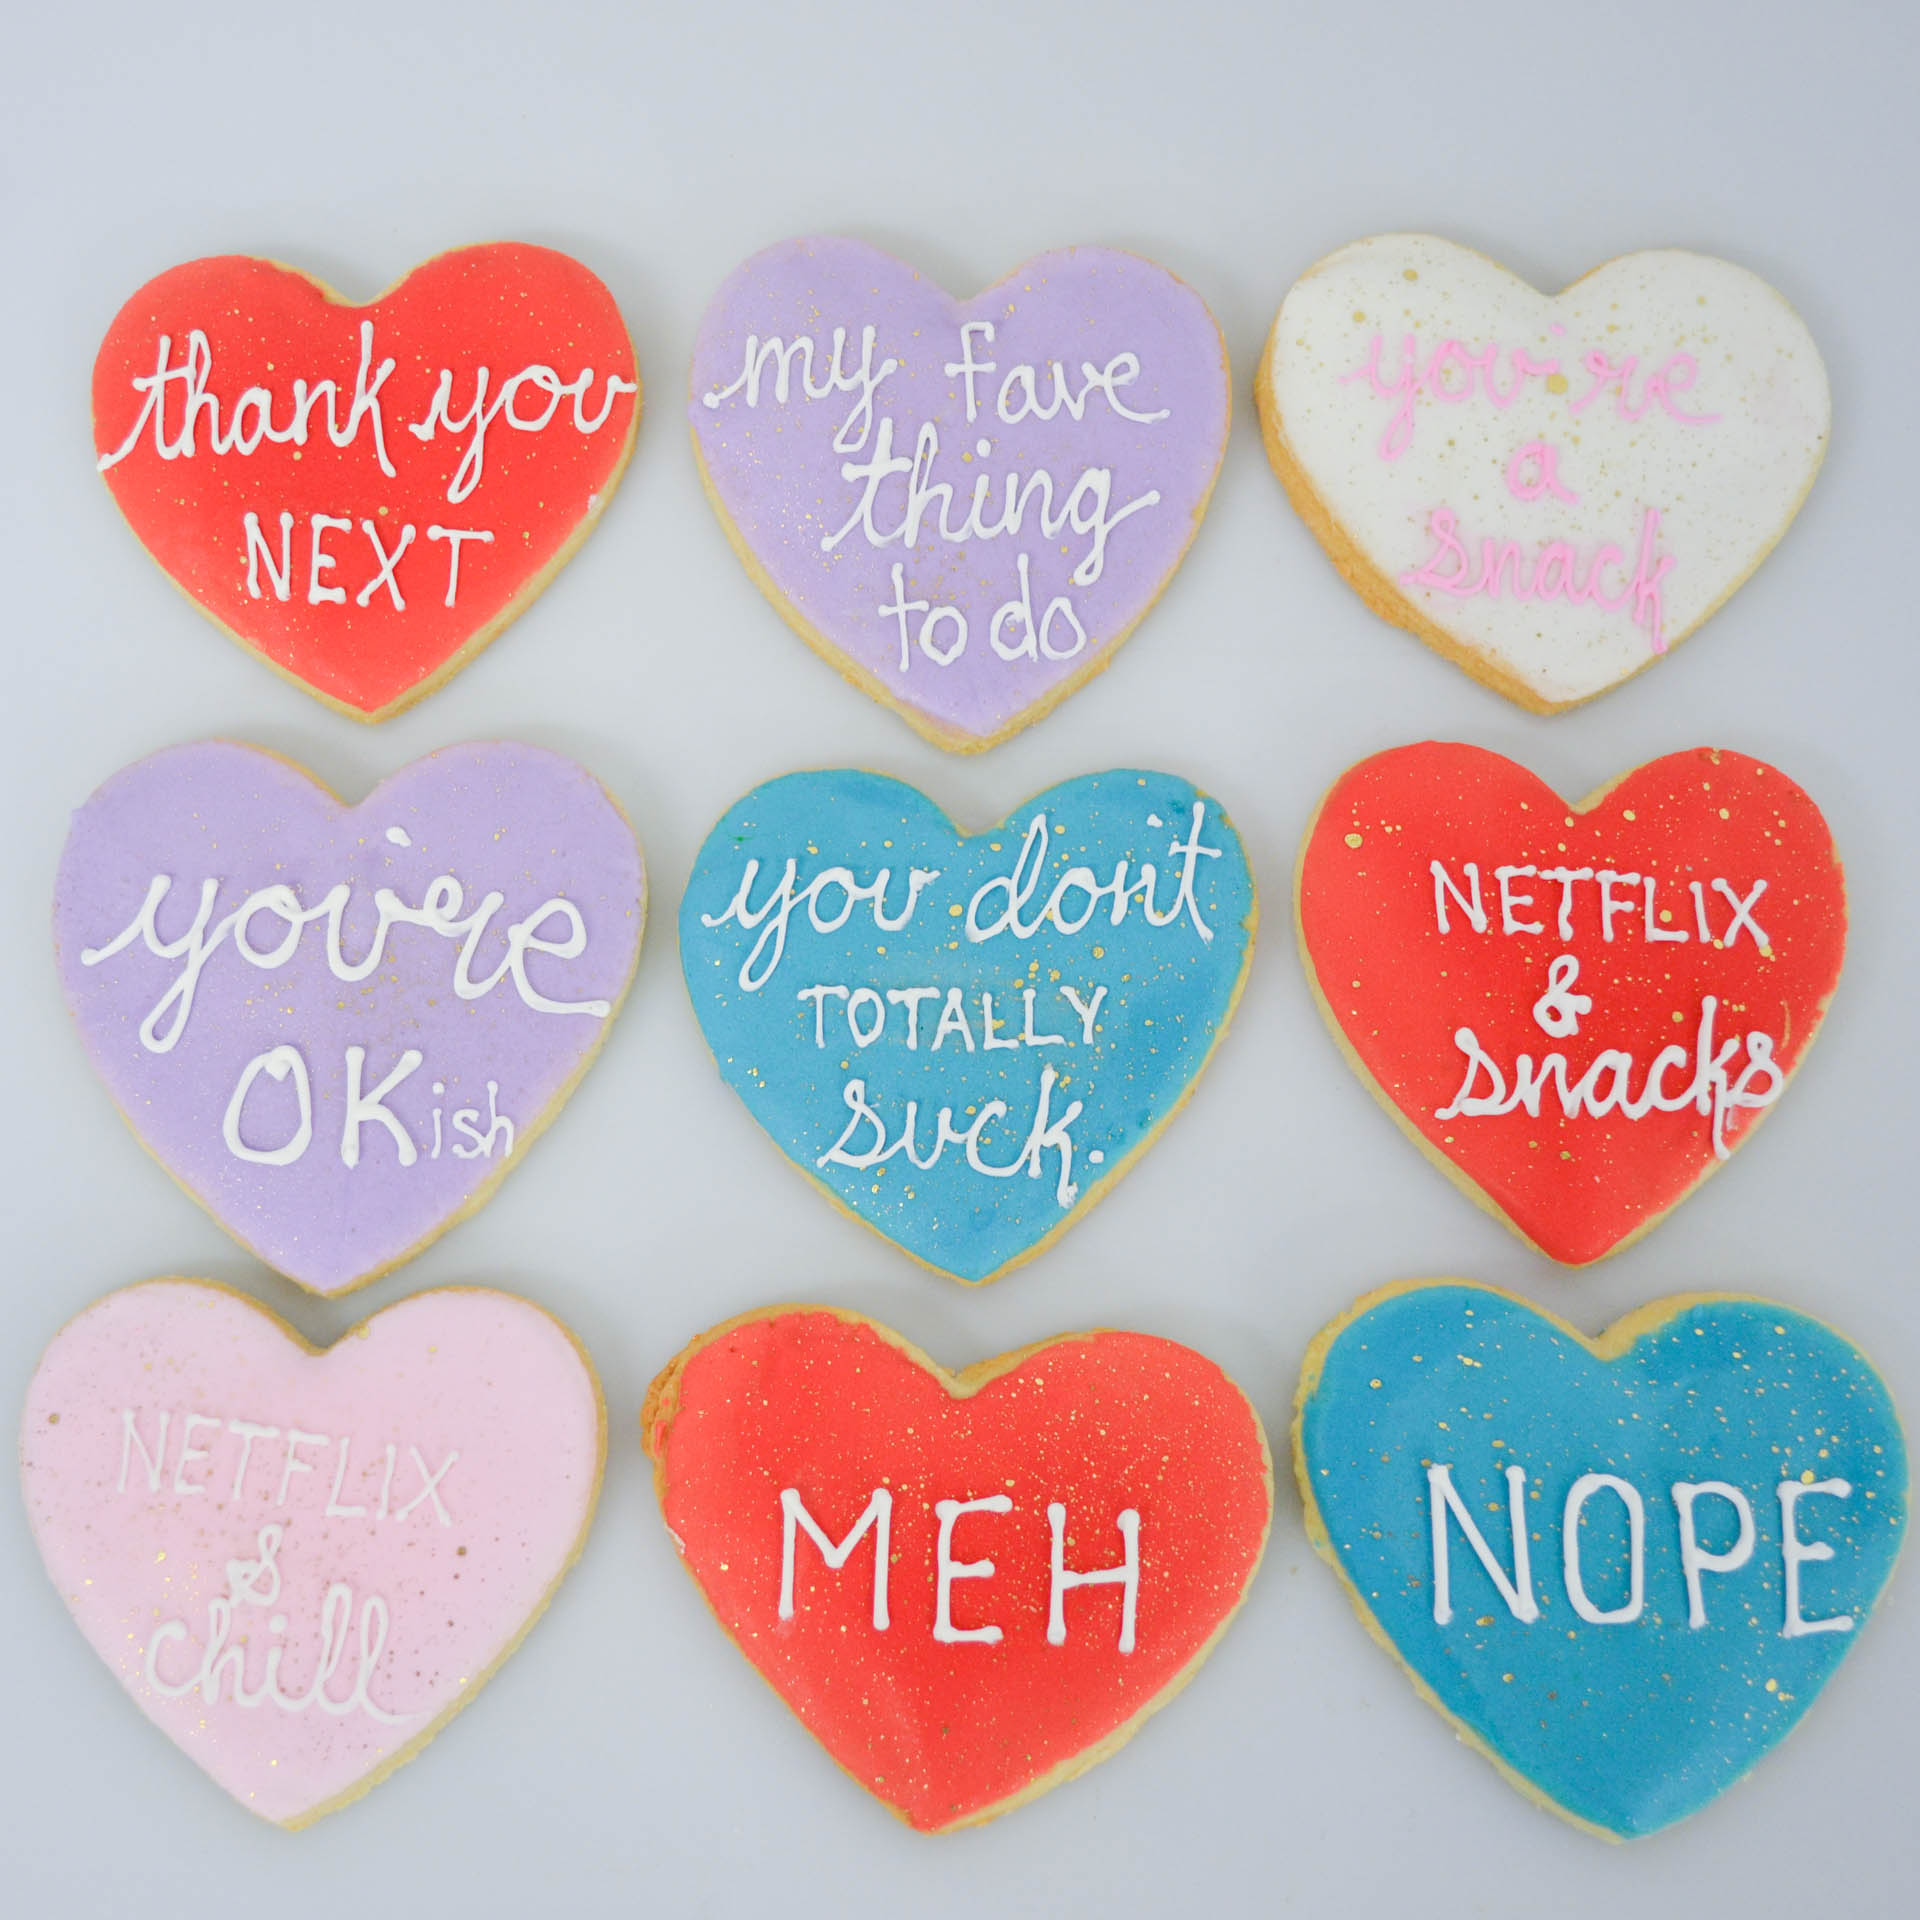 Fun and playful Valentine's Day sugar cookies from Sweet Revenge Bake Shop in Windsor, Ontario.